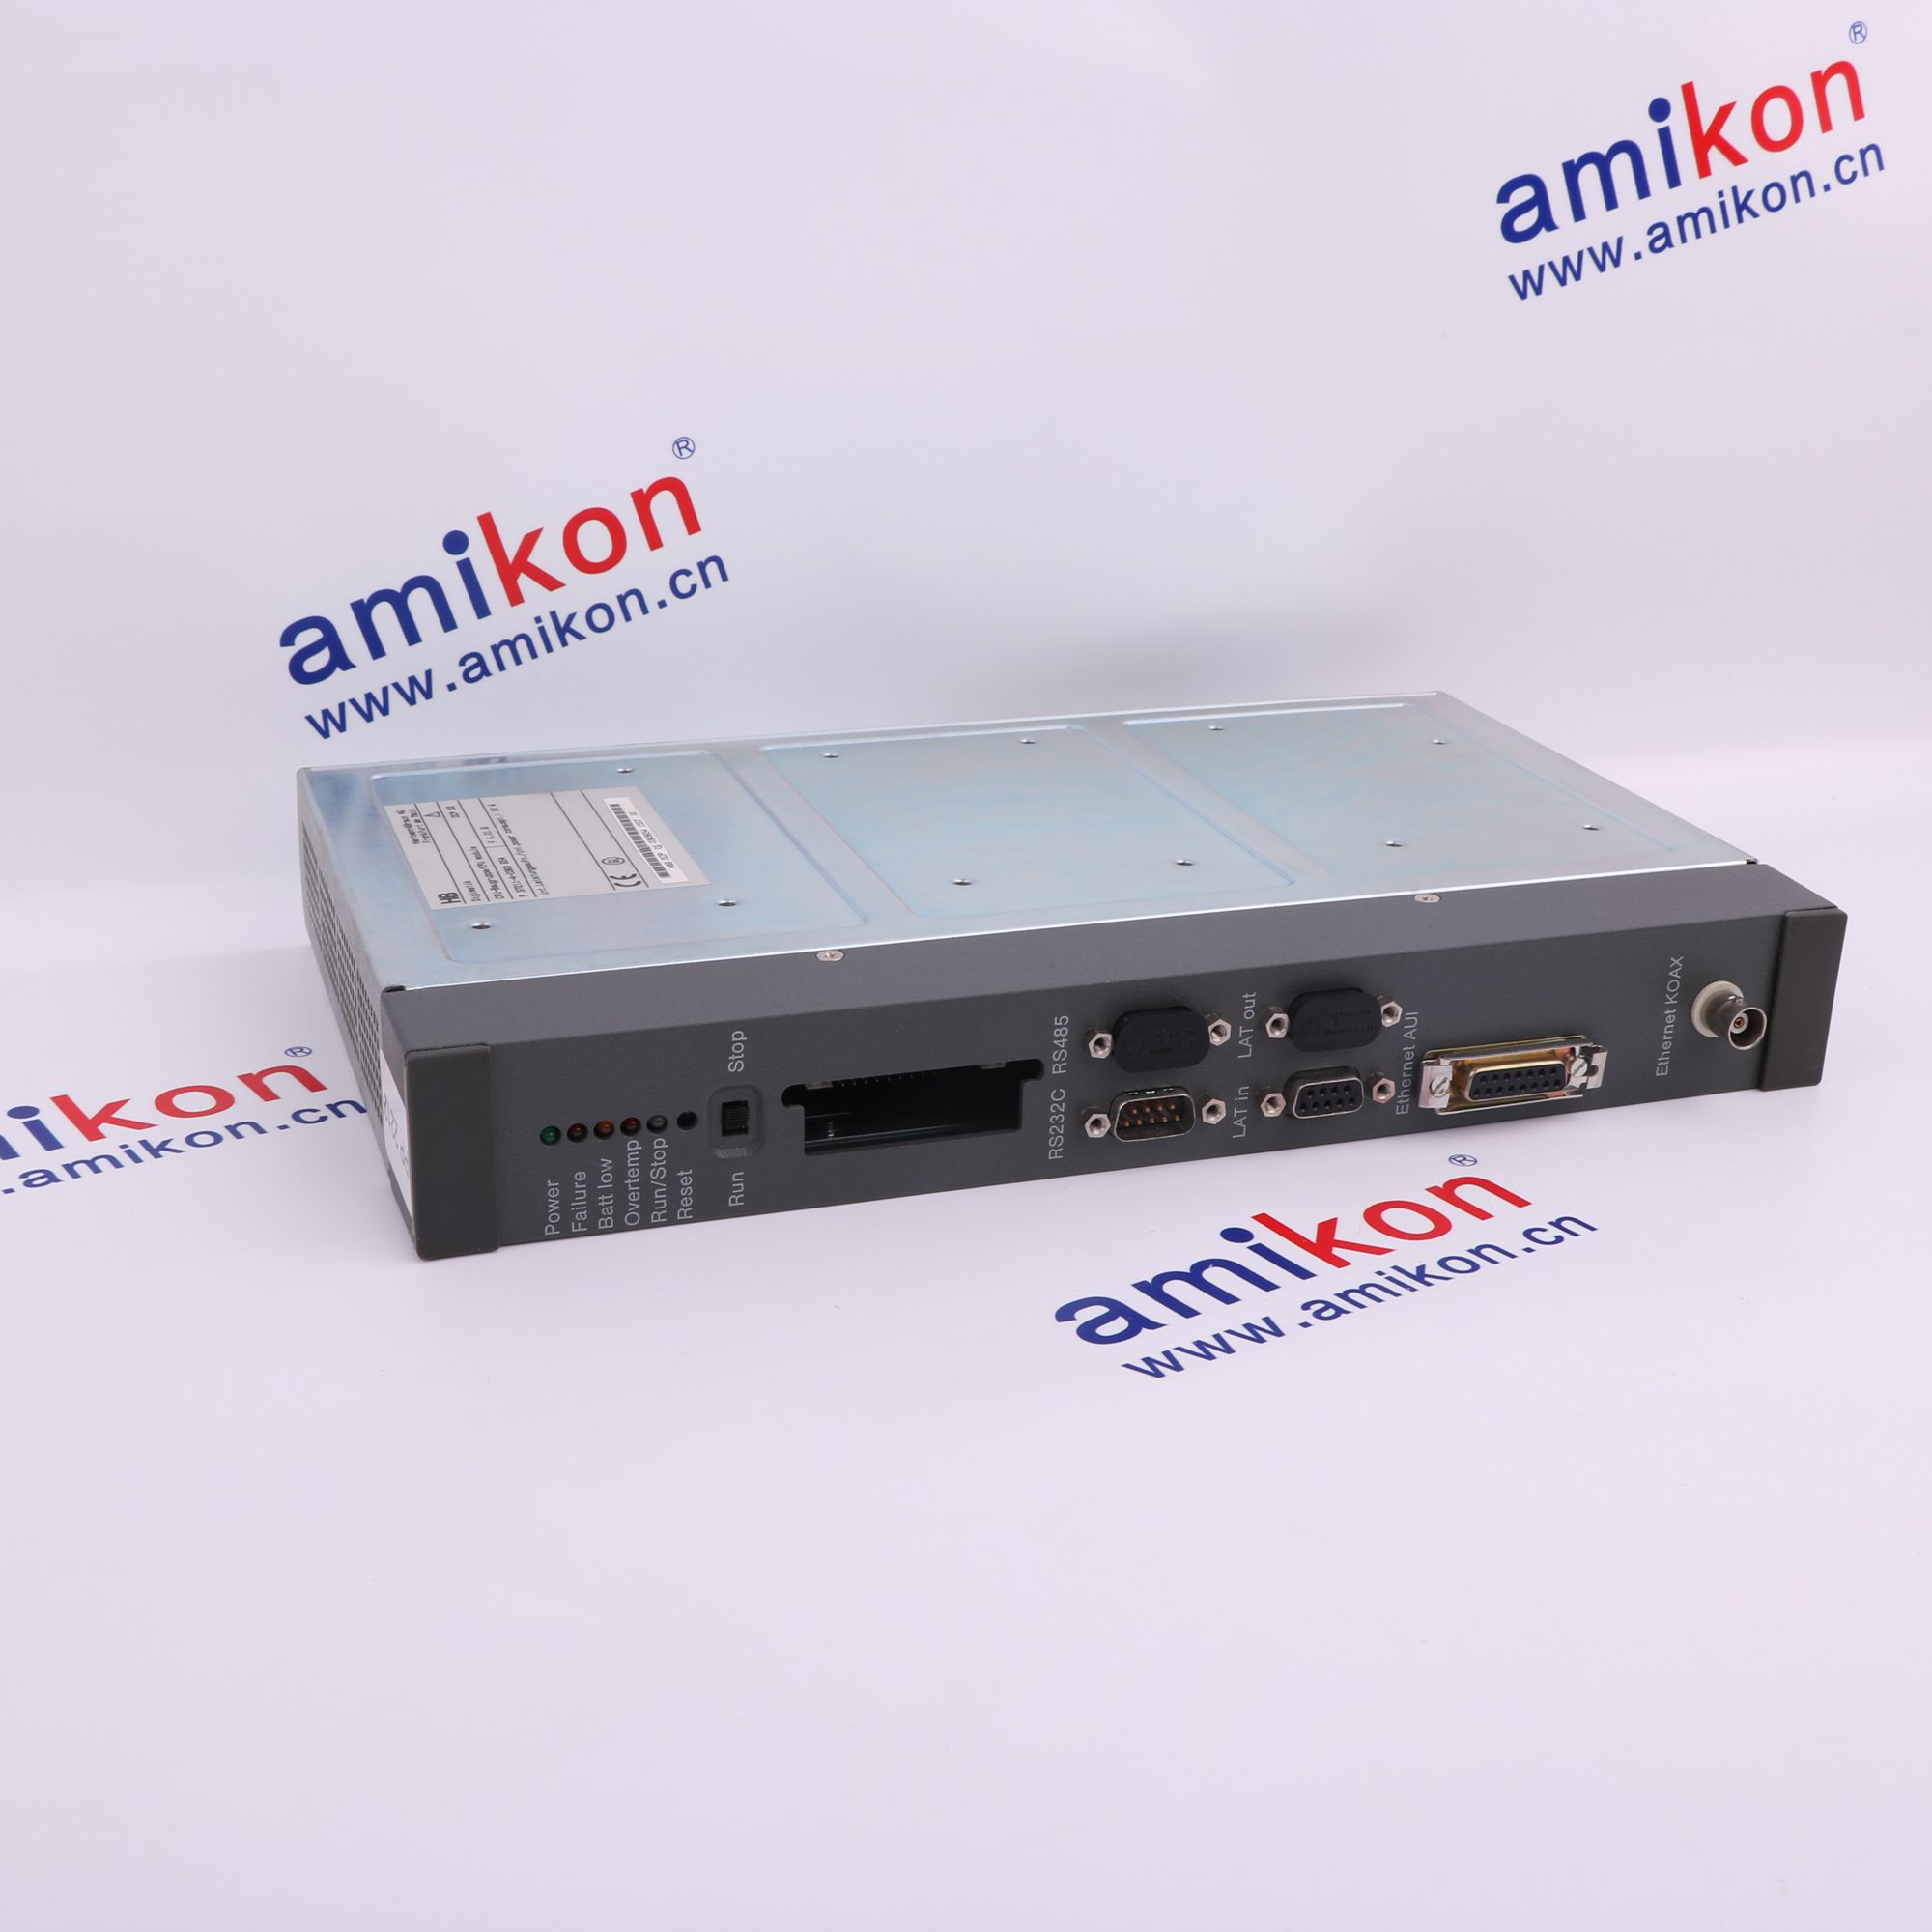 REDBACK NETWORKS ATMDS-3-600-0103 REV 03-VAC1DD0AAA-SMS1000